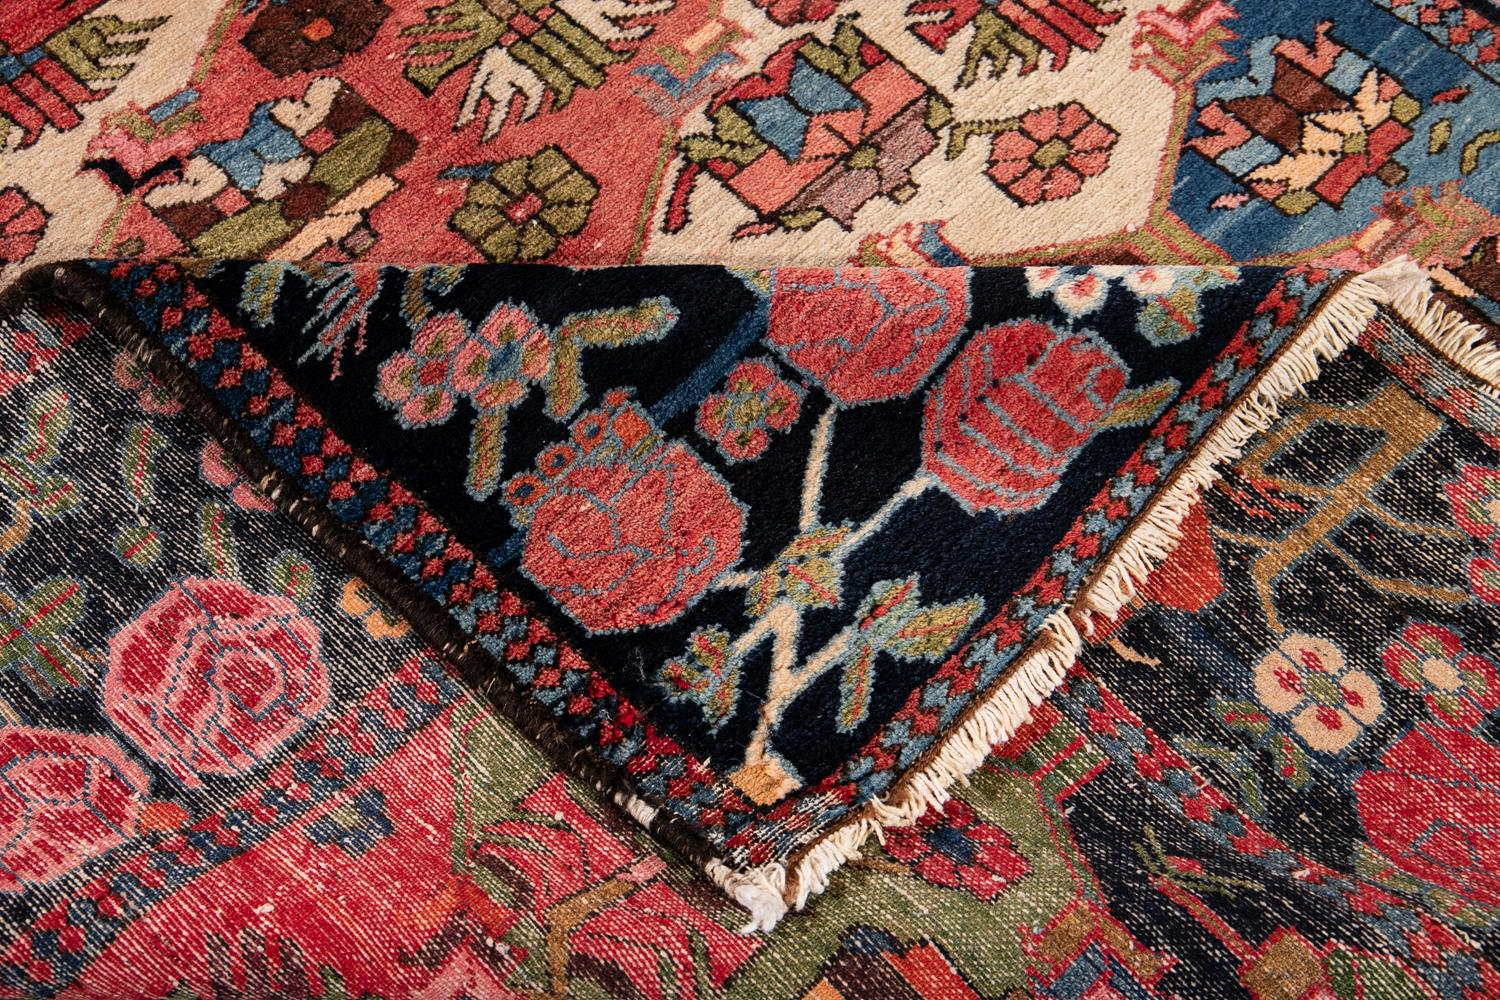 Antique Early 20th Century Bakhtiani Rug 5' x 7'